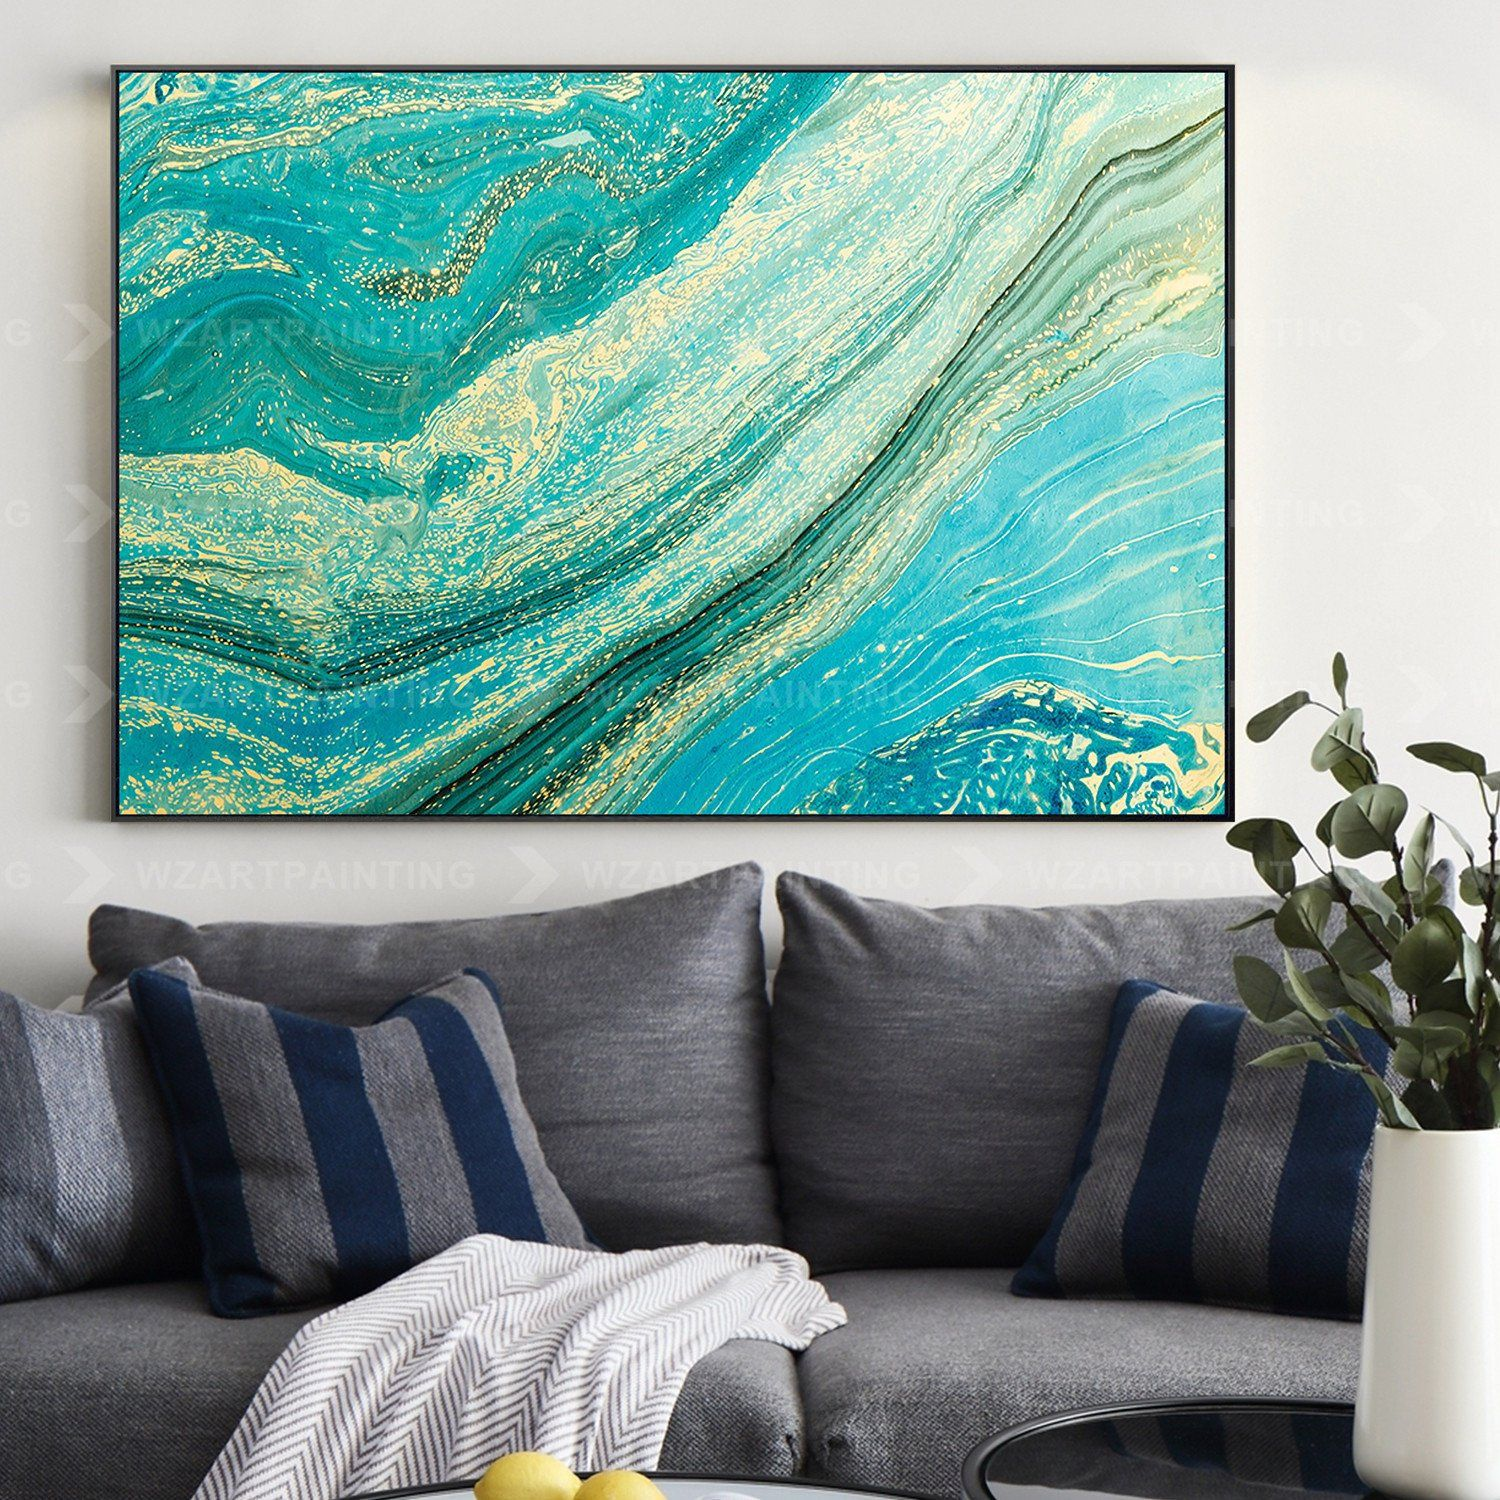 Abstract Wave Green Blue Acrylic Print On Canvas Painting Wall Art Pictures Framed For Living Room Home Decor Quadros Caudros Ready To Hang In 2020 Wall Art Canvas Painting Abstract Waves